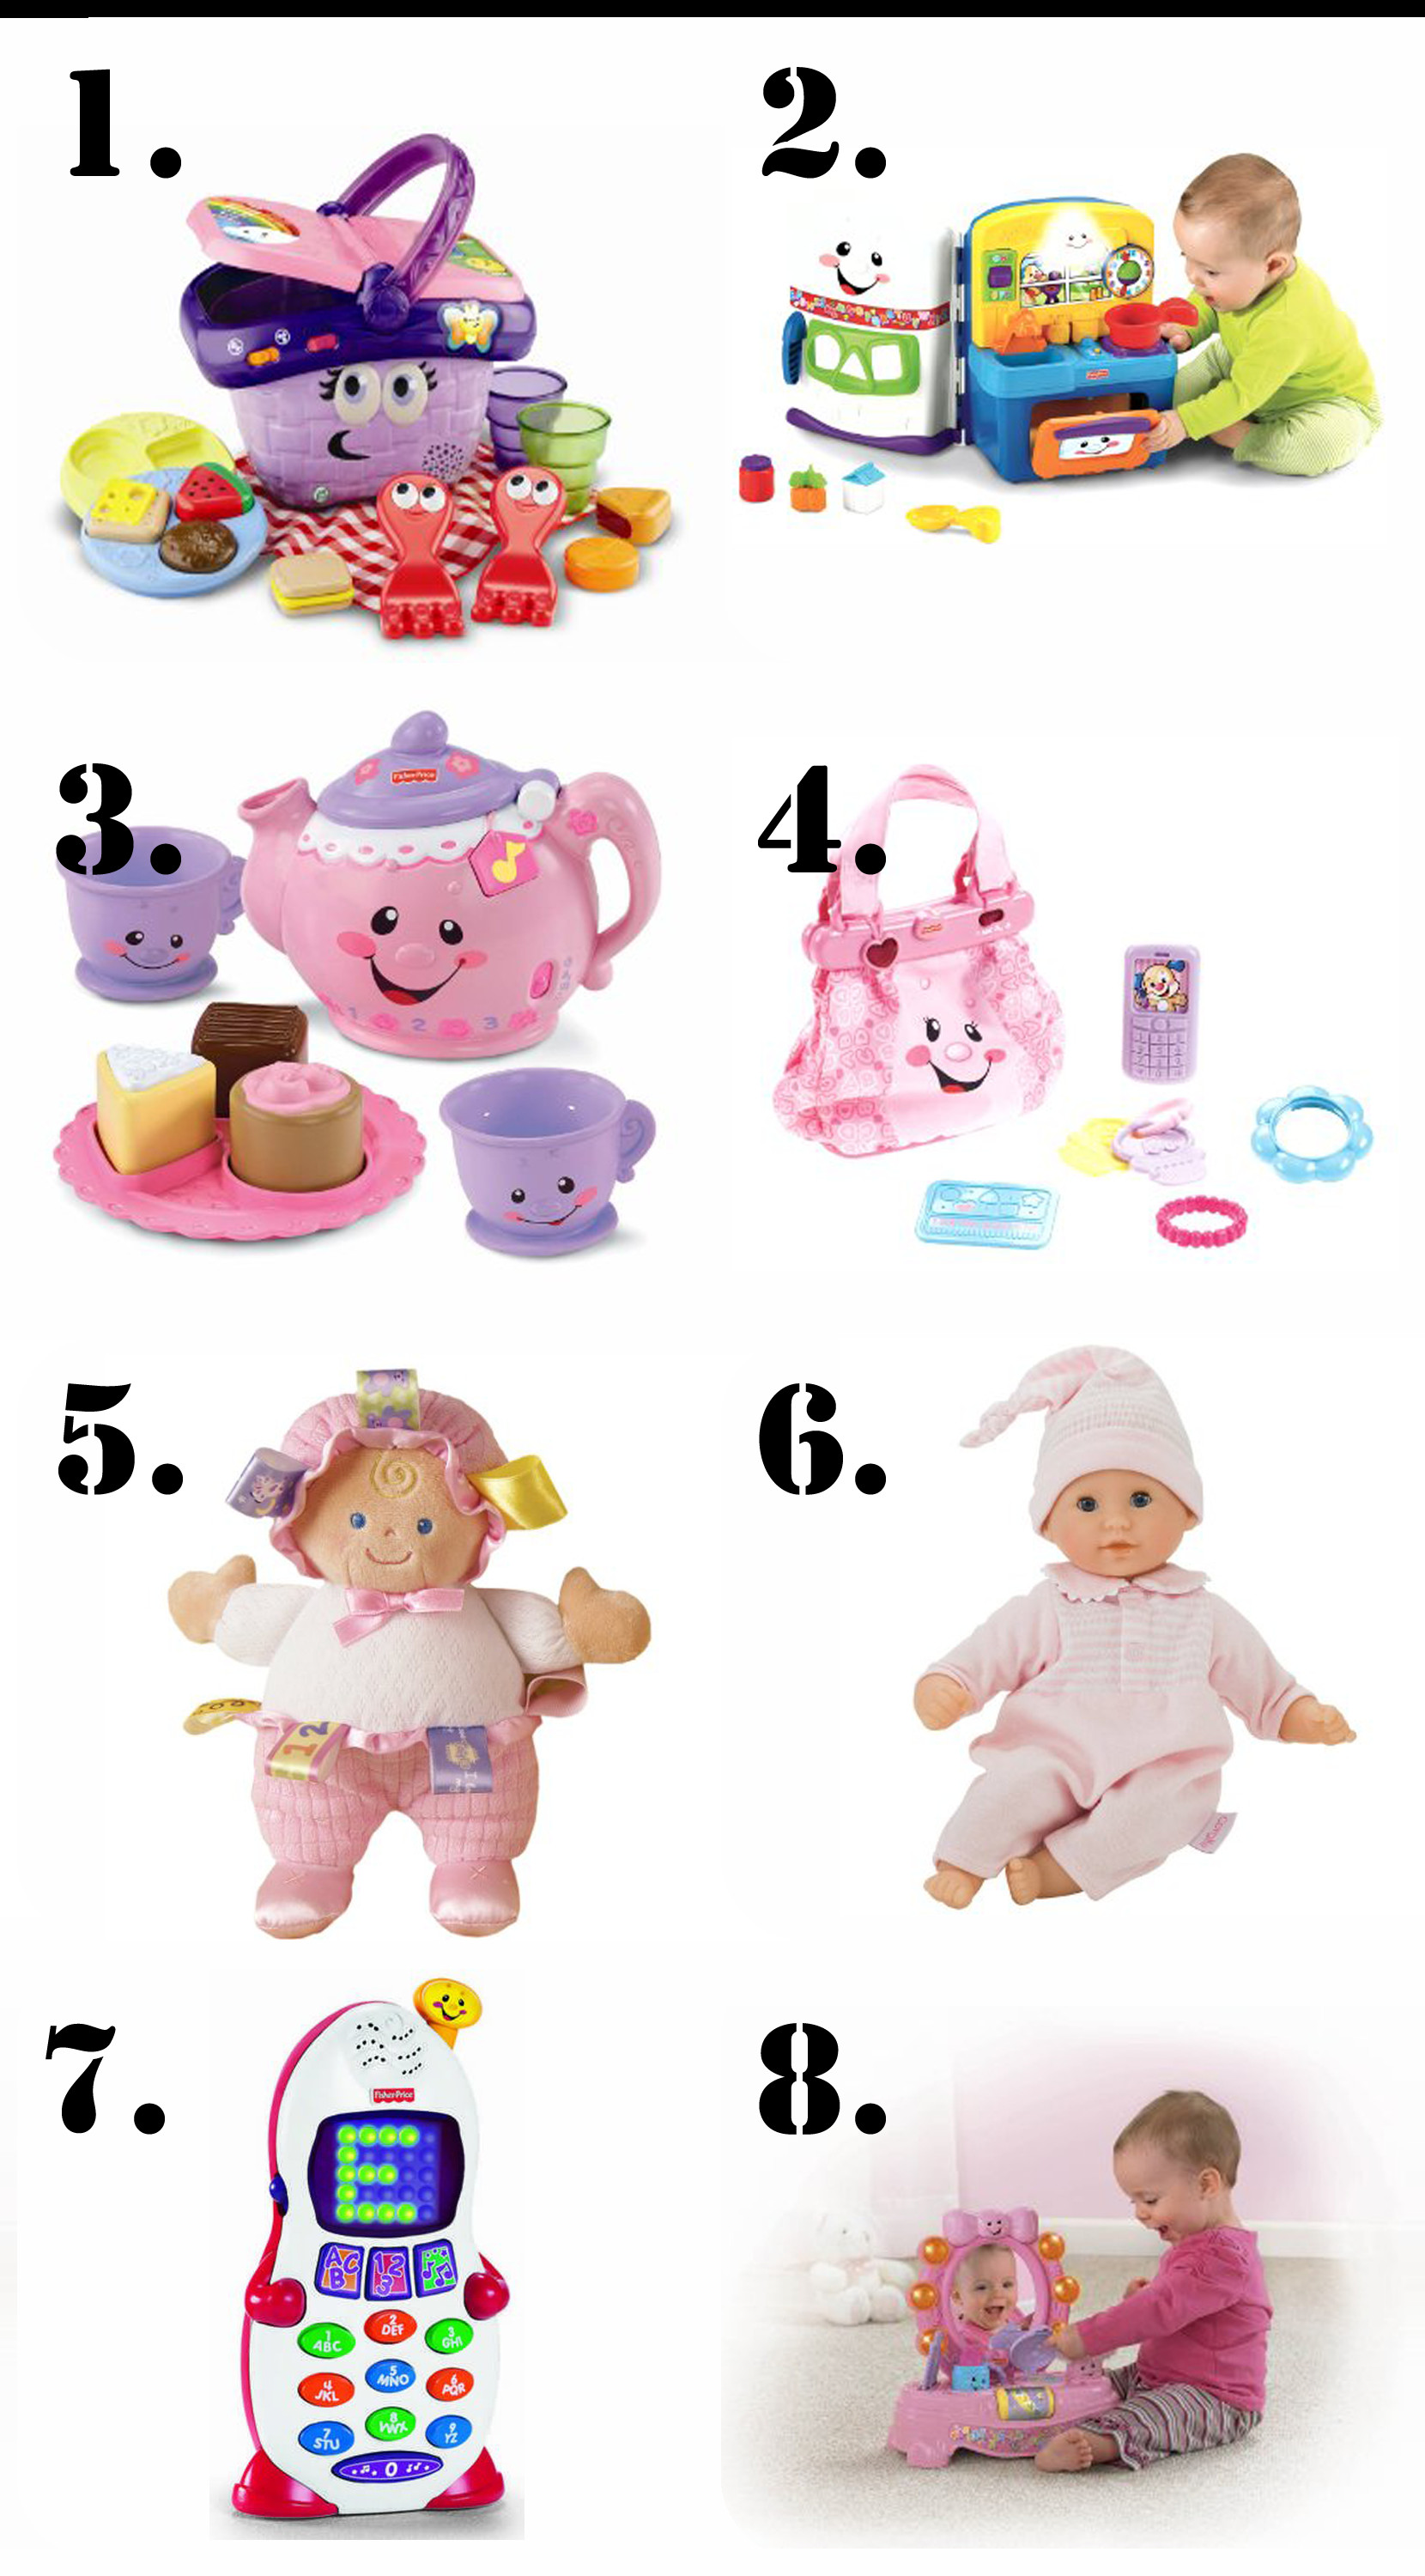 Best ideas about Gift Ideas For 3 Year Old Baby Girl . Save or Pin The Ultimate List of Gift Ideas for a 1 Year Old Girl Now.